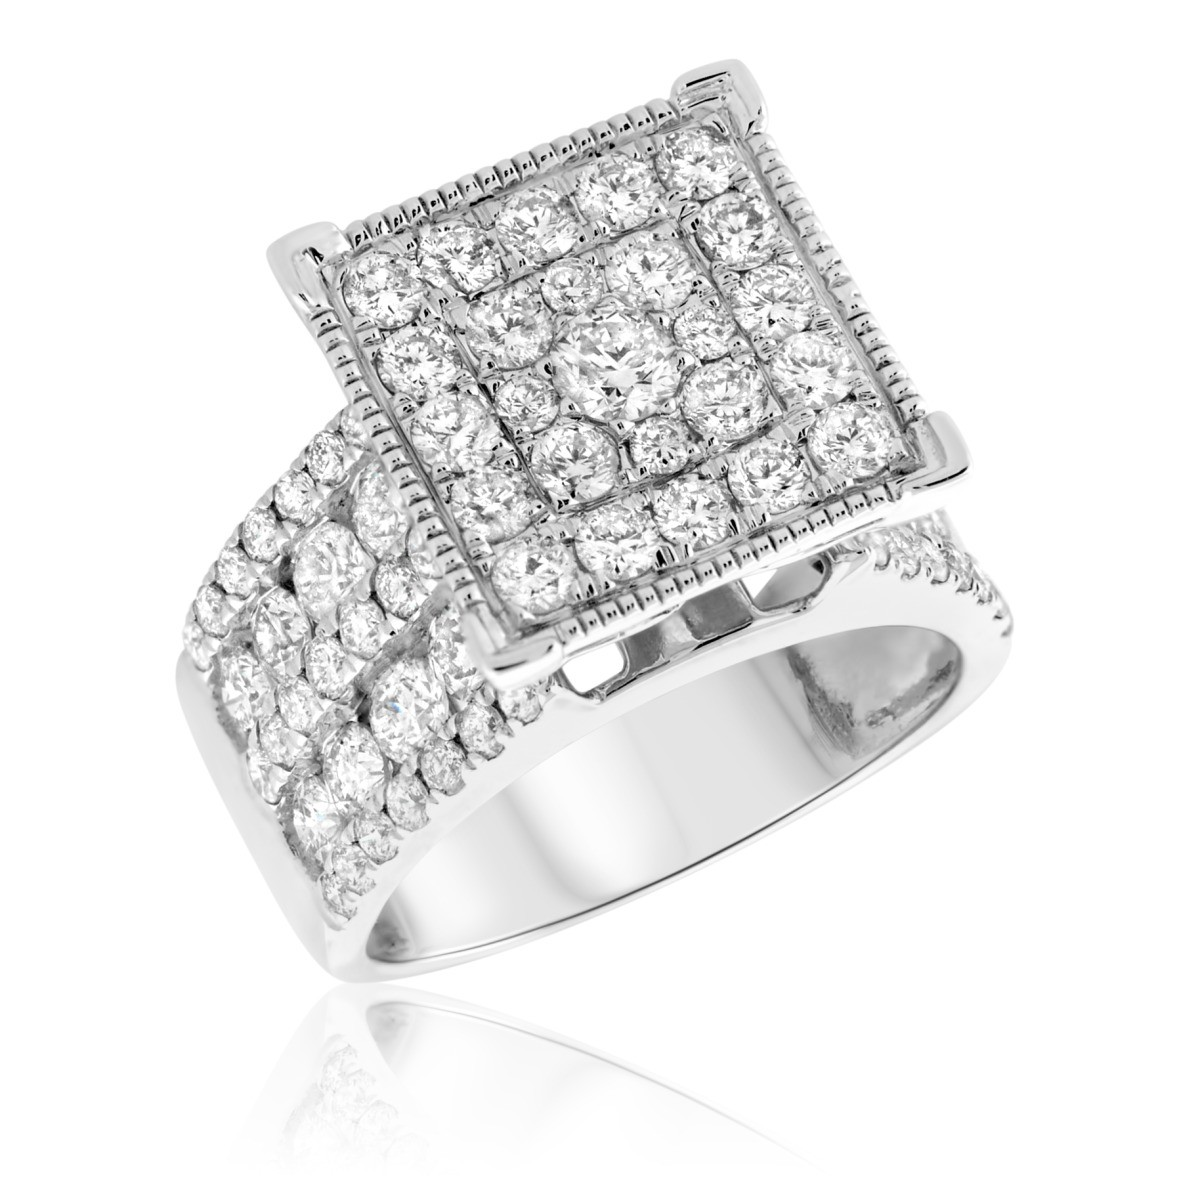 3 CT. T.W. Diamond Engagement Ring 14K White Gold